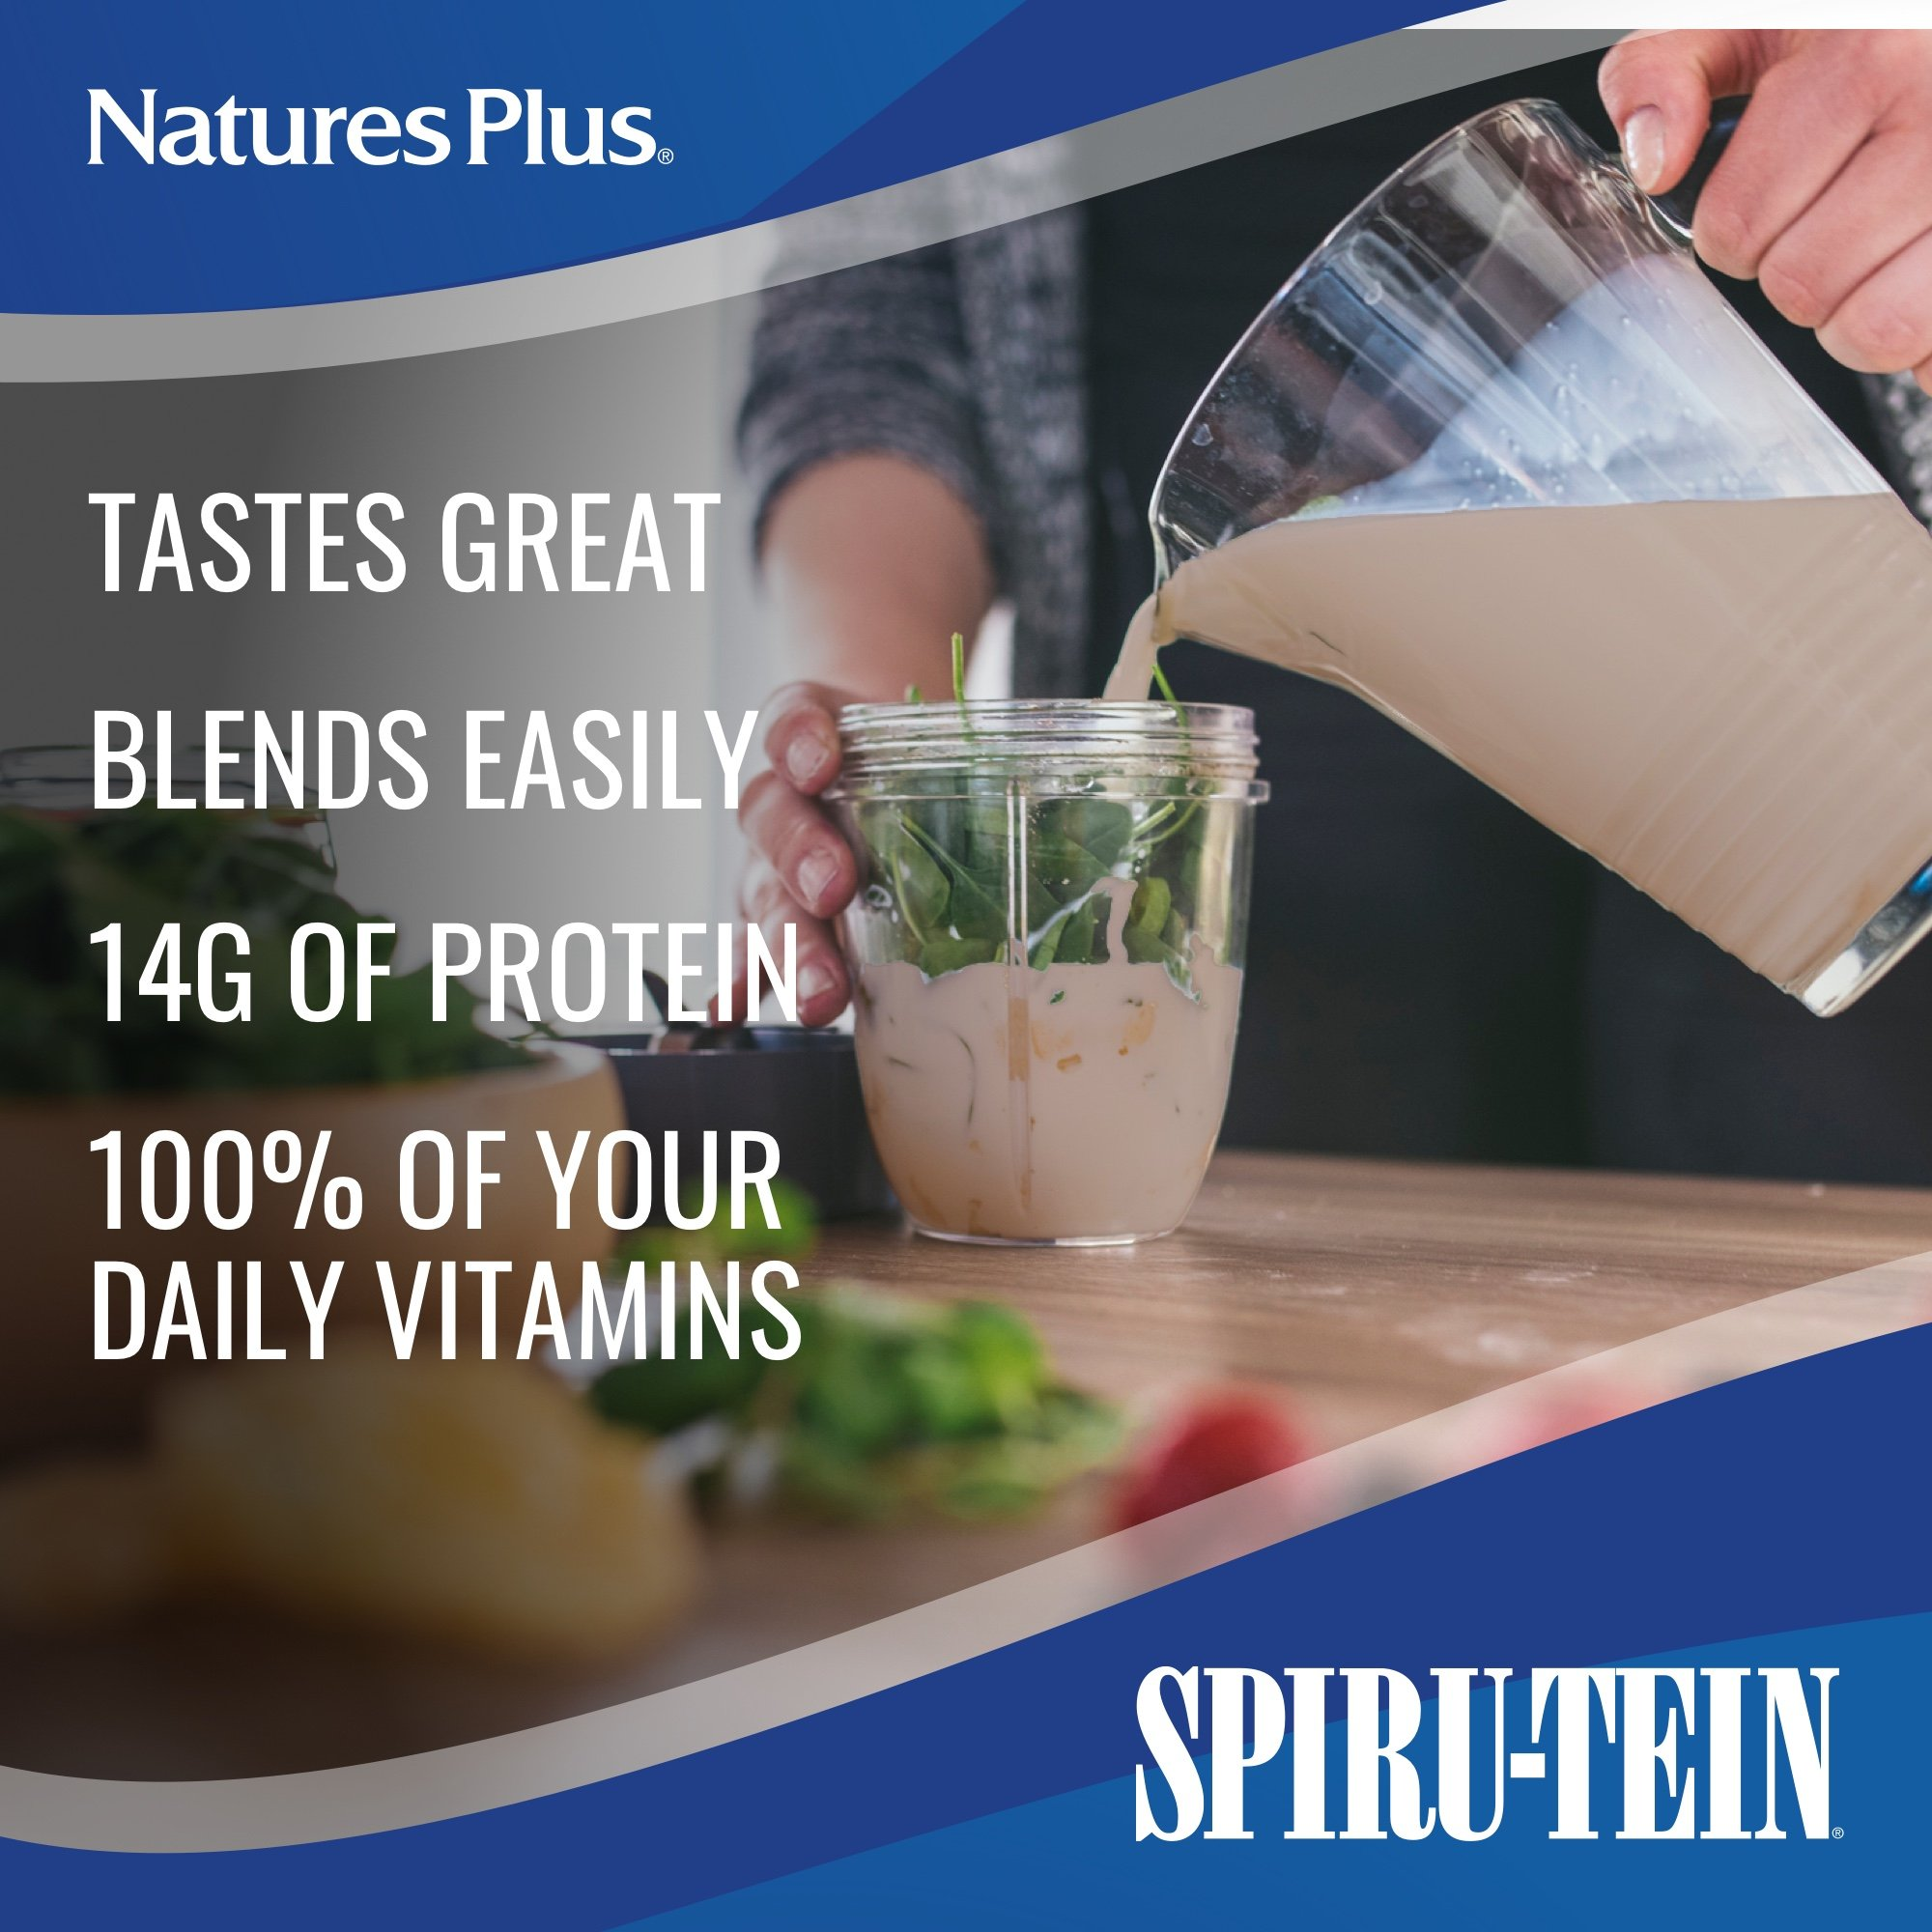 NaturesPlus SPIRU-TEIN Shake - Chocolate - 5 lbs, Spirulina Protein Powder - Plant Based Meal Replacement, Vitamins & Minerals For Energy - Vegetarian, Gluten-Free - 81 Servings by Nature's Plus (Image #4)